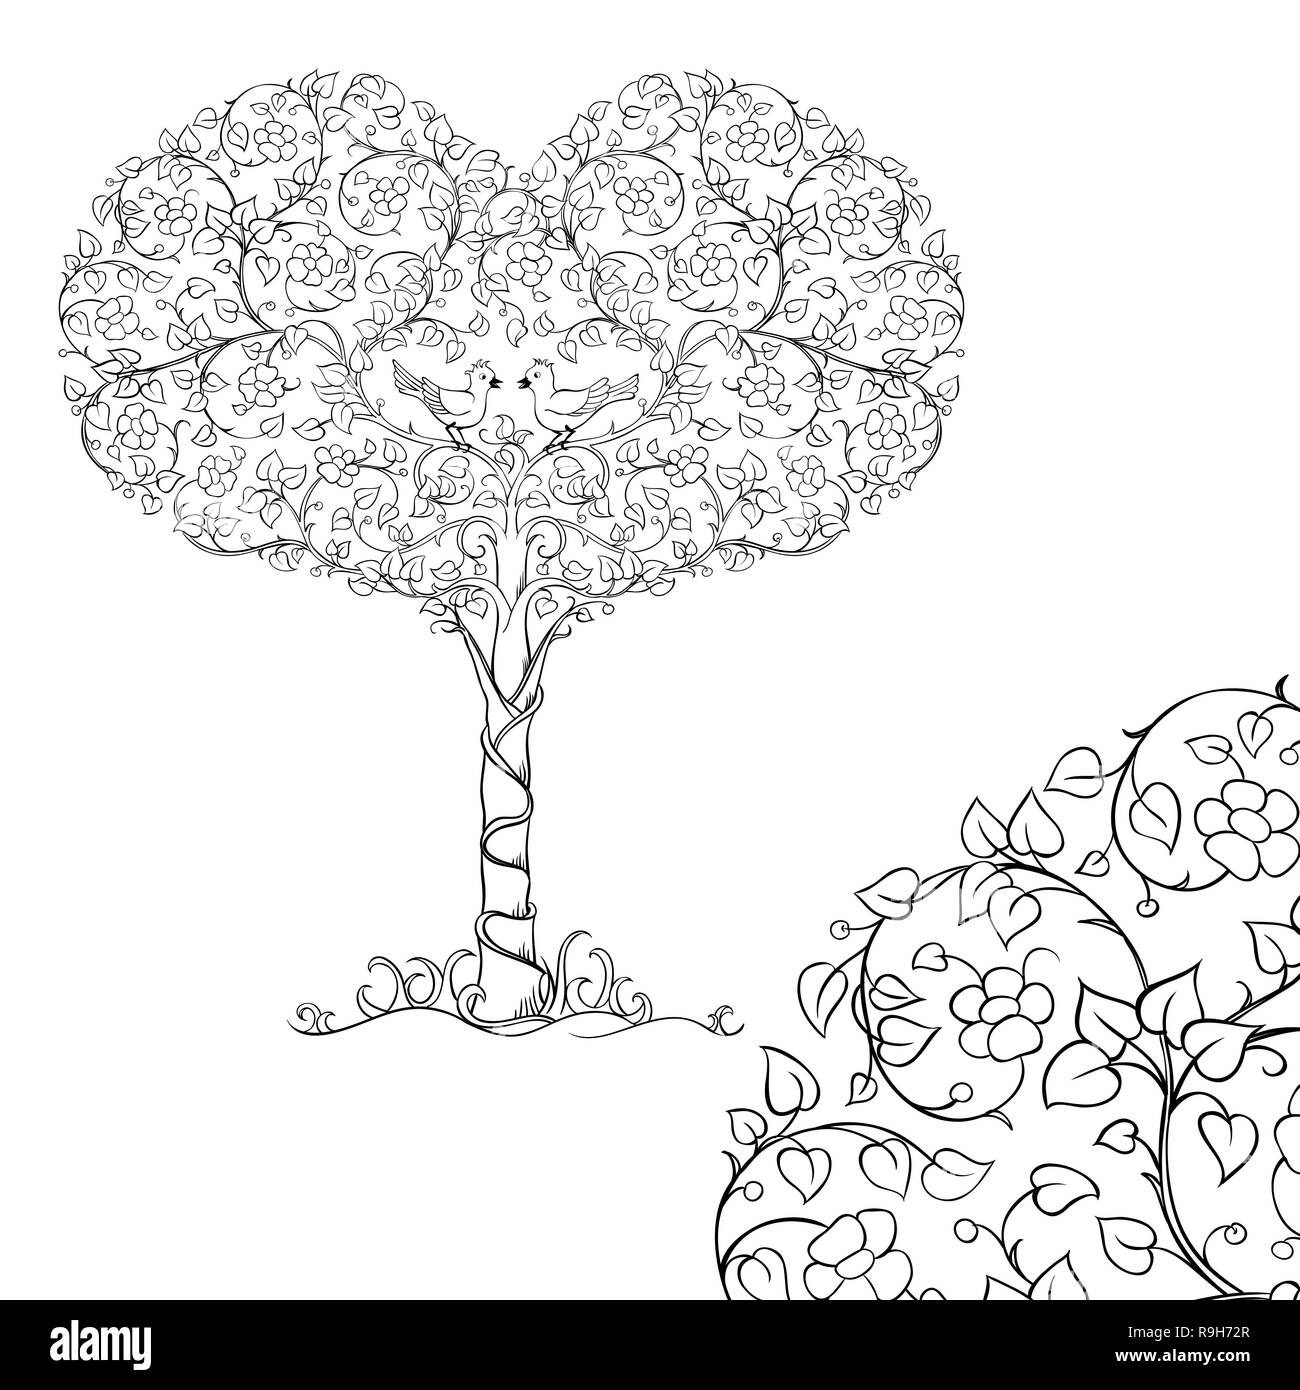 Coloriage Arbre Anti Stress.Pages De Livre De Coloriage Pour Adulte Photos Pages De Livre De